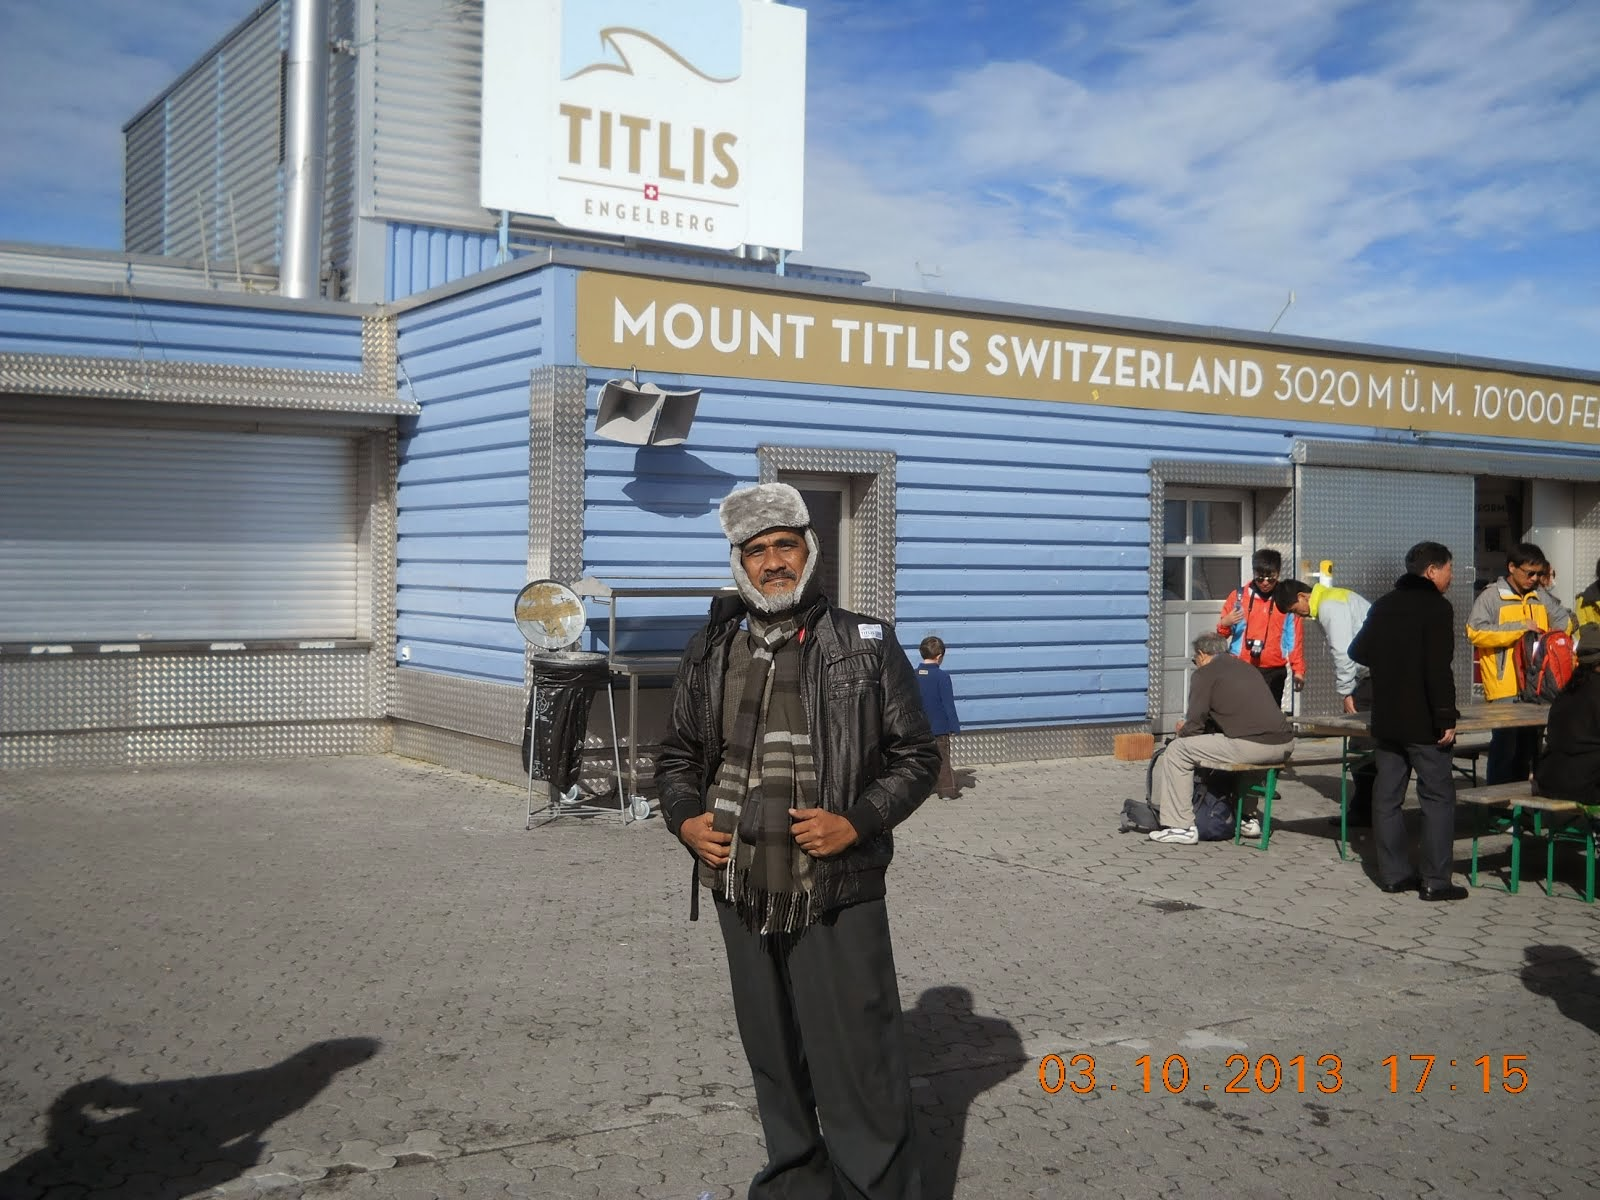 mt titlis switzerland